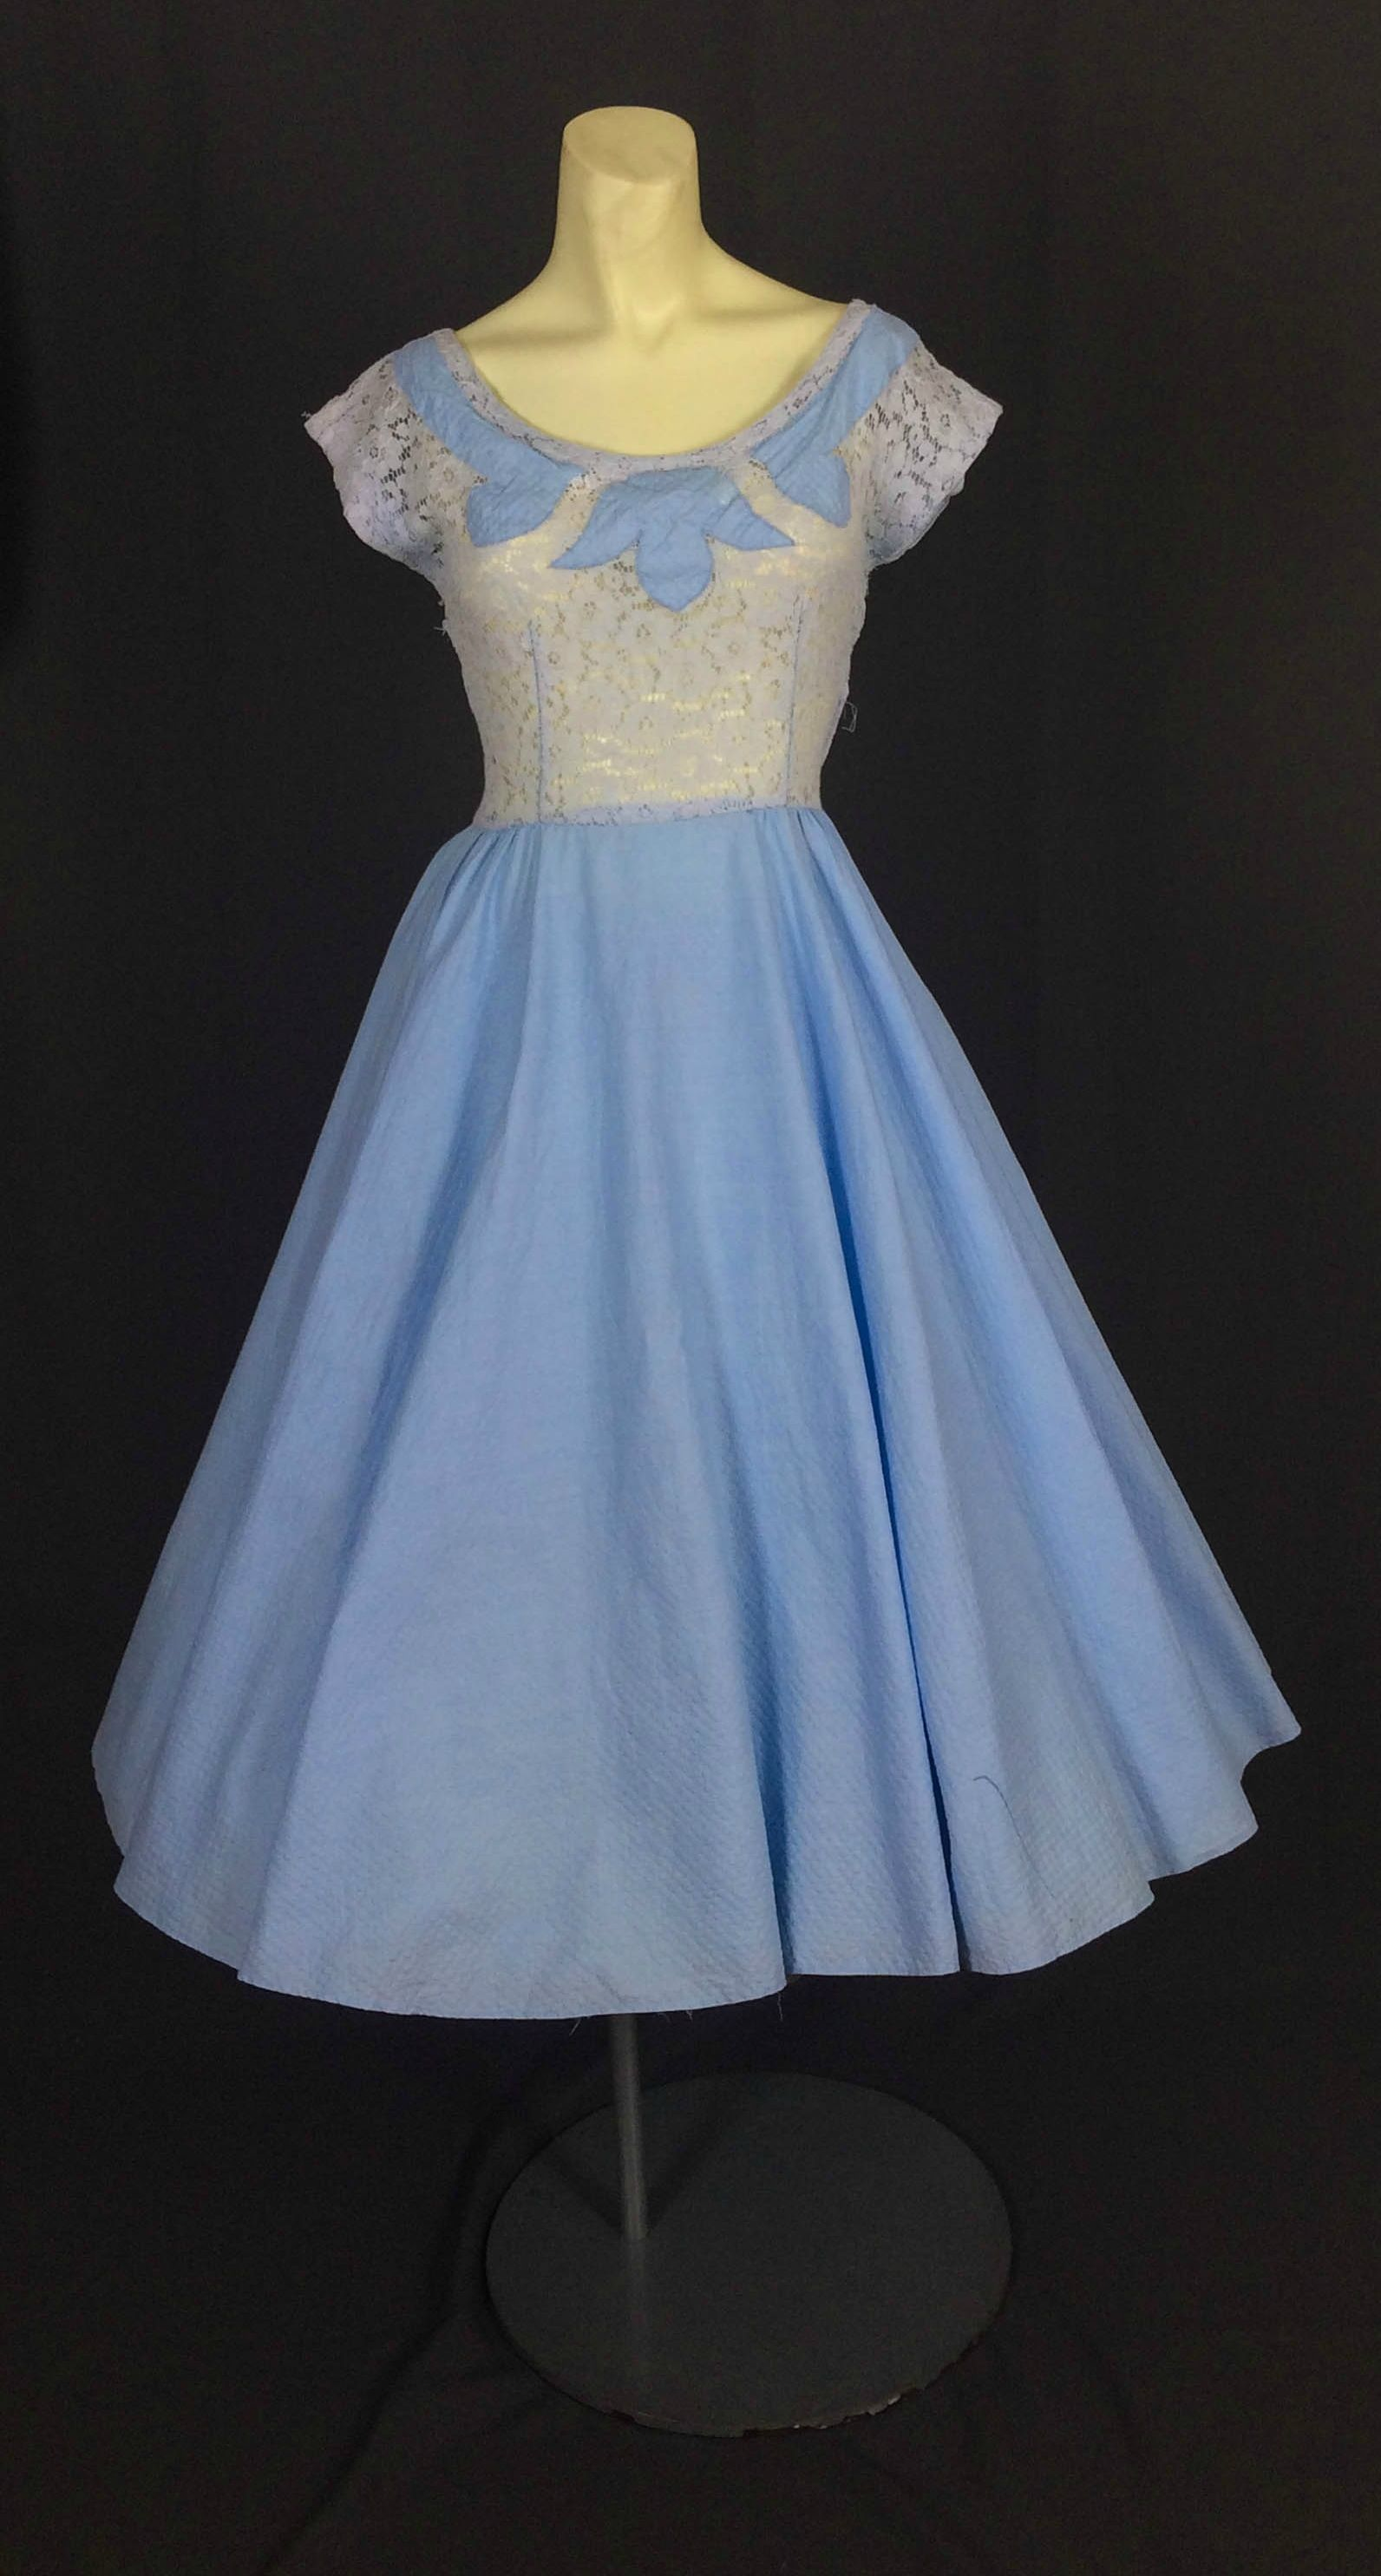 1940s Lace Dress - KayDoveVintage #1940s #40s #50s #1950s #forties ...